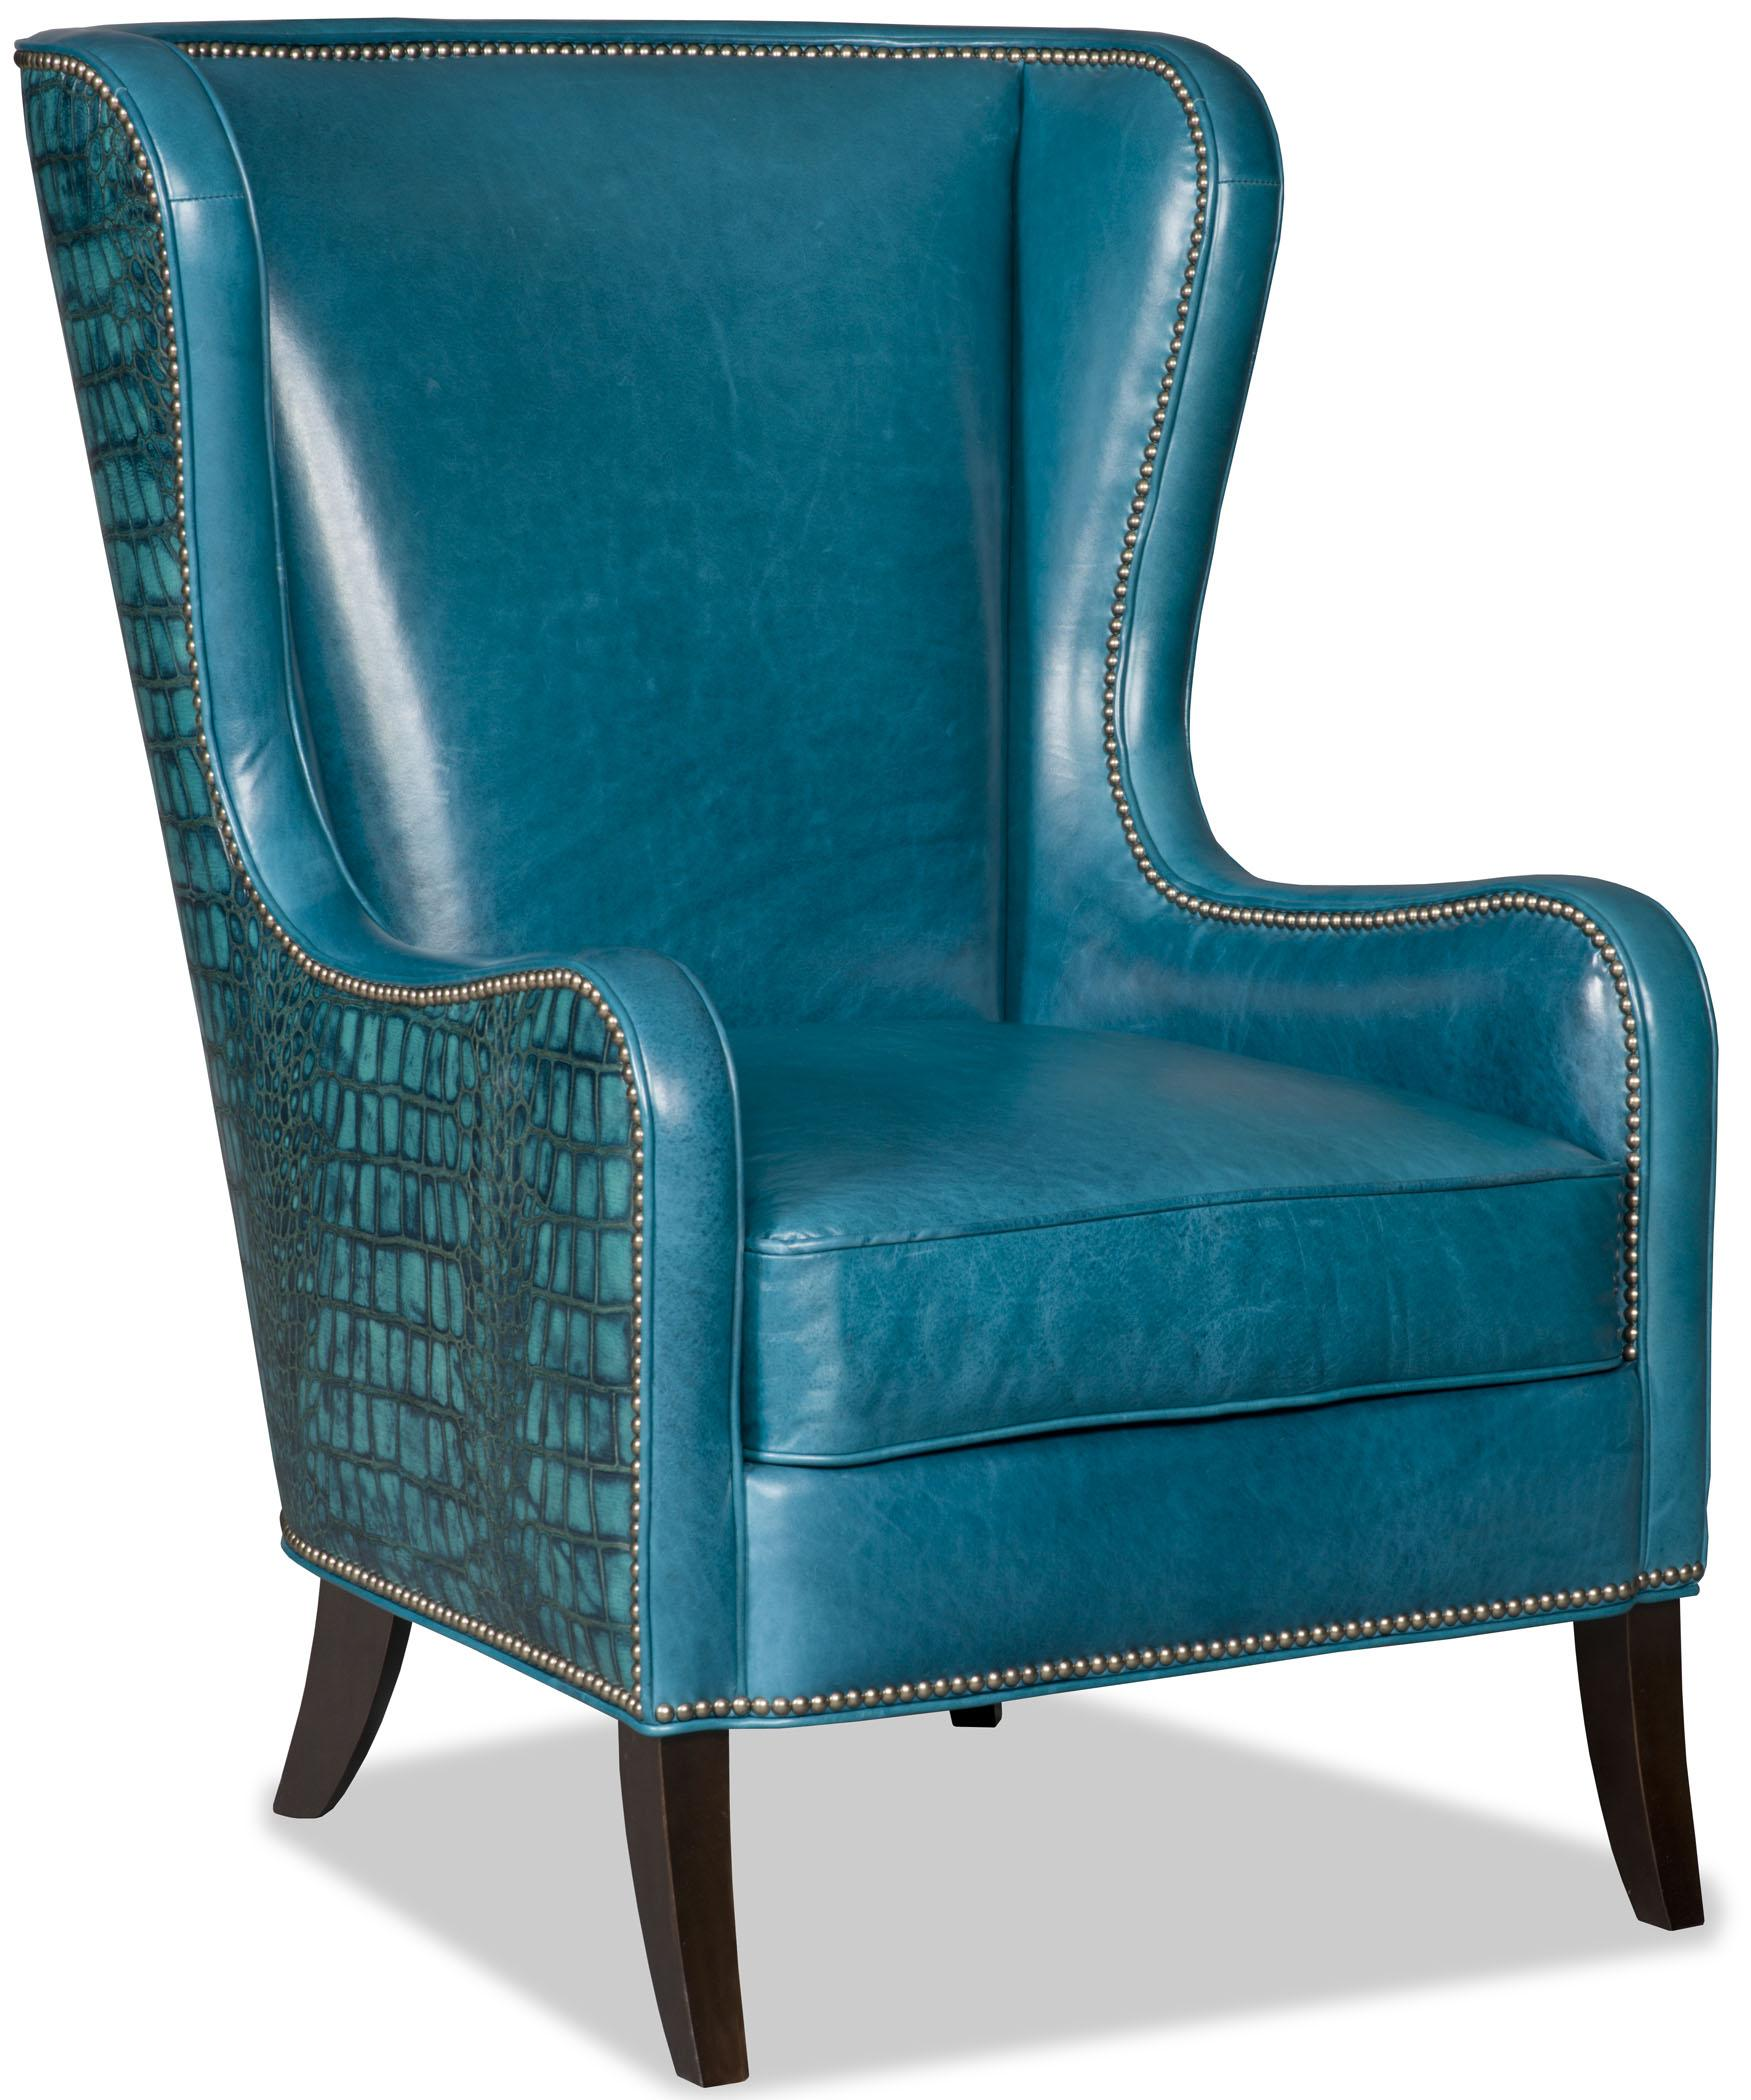 Bradington Young Club Chairs Aurora Chair With Flared Wing Back And Nailhead Trim Sprintz Furniture Wing Chairs